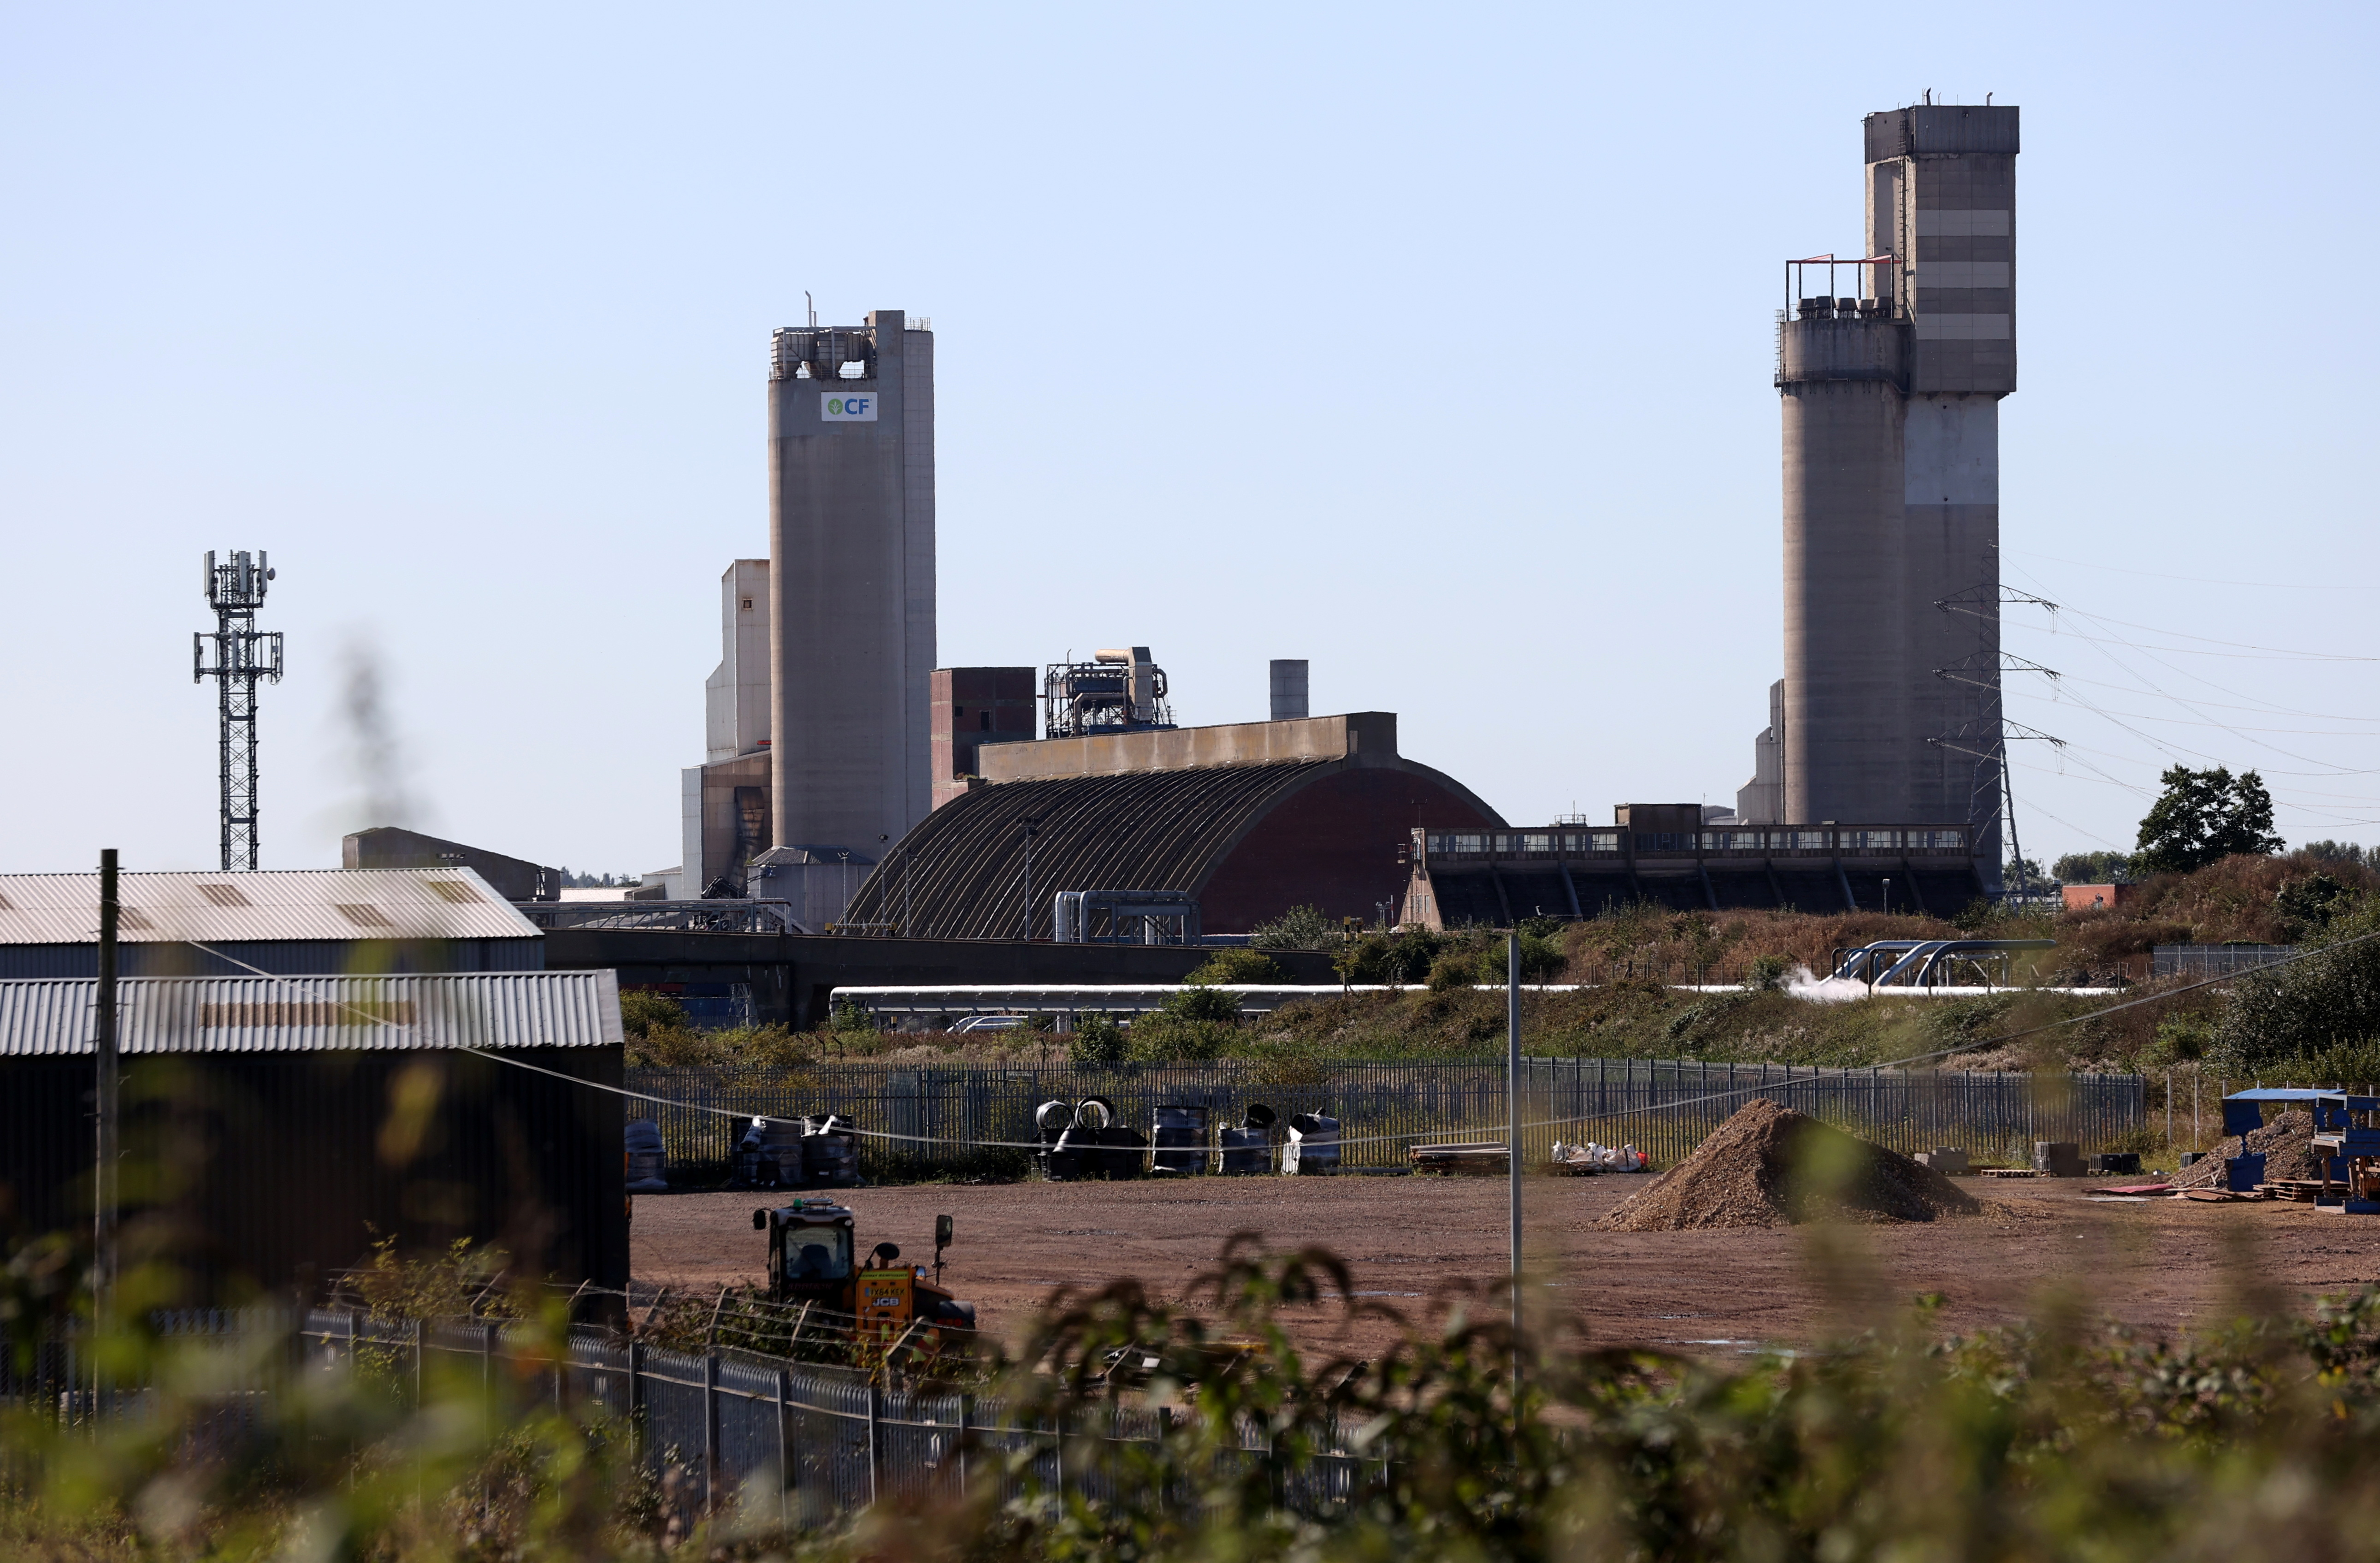 A general view of the CF industries plant in Billingham, Britain September 20, 2021. REUTERS/Lee Smith